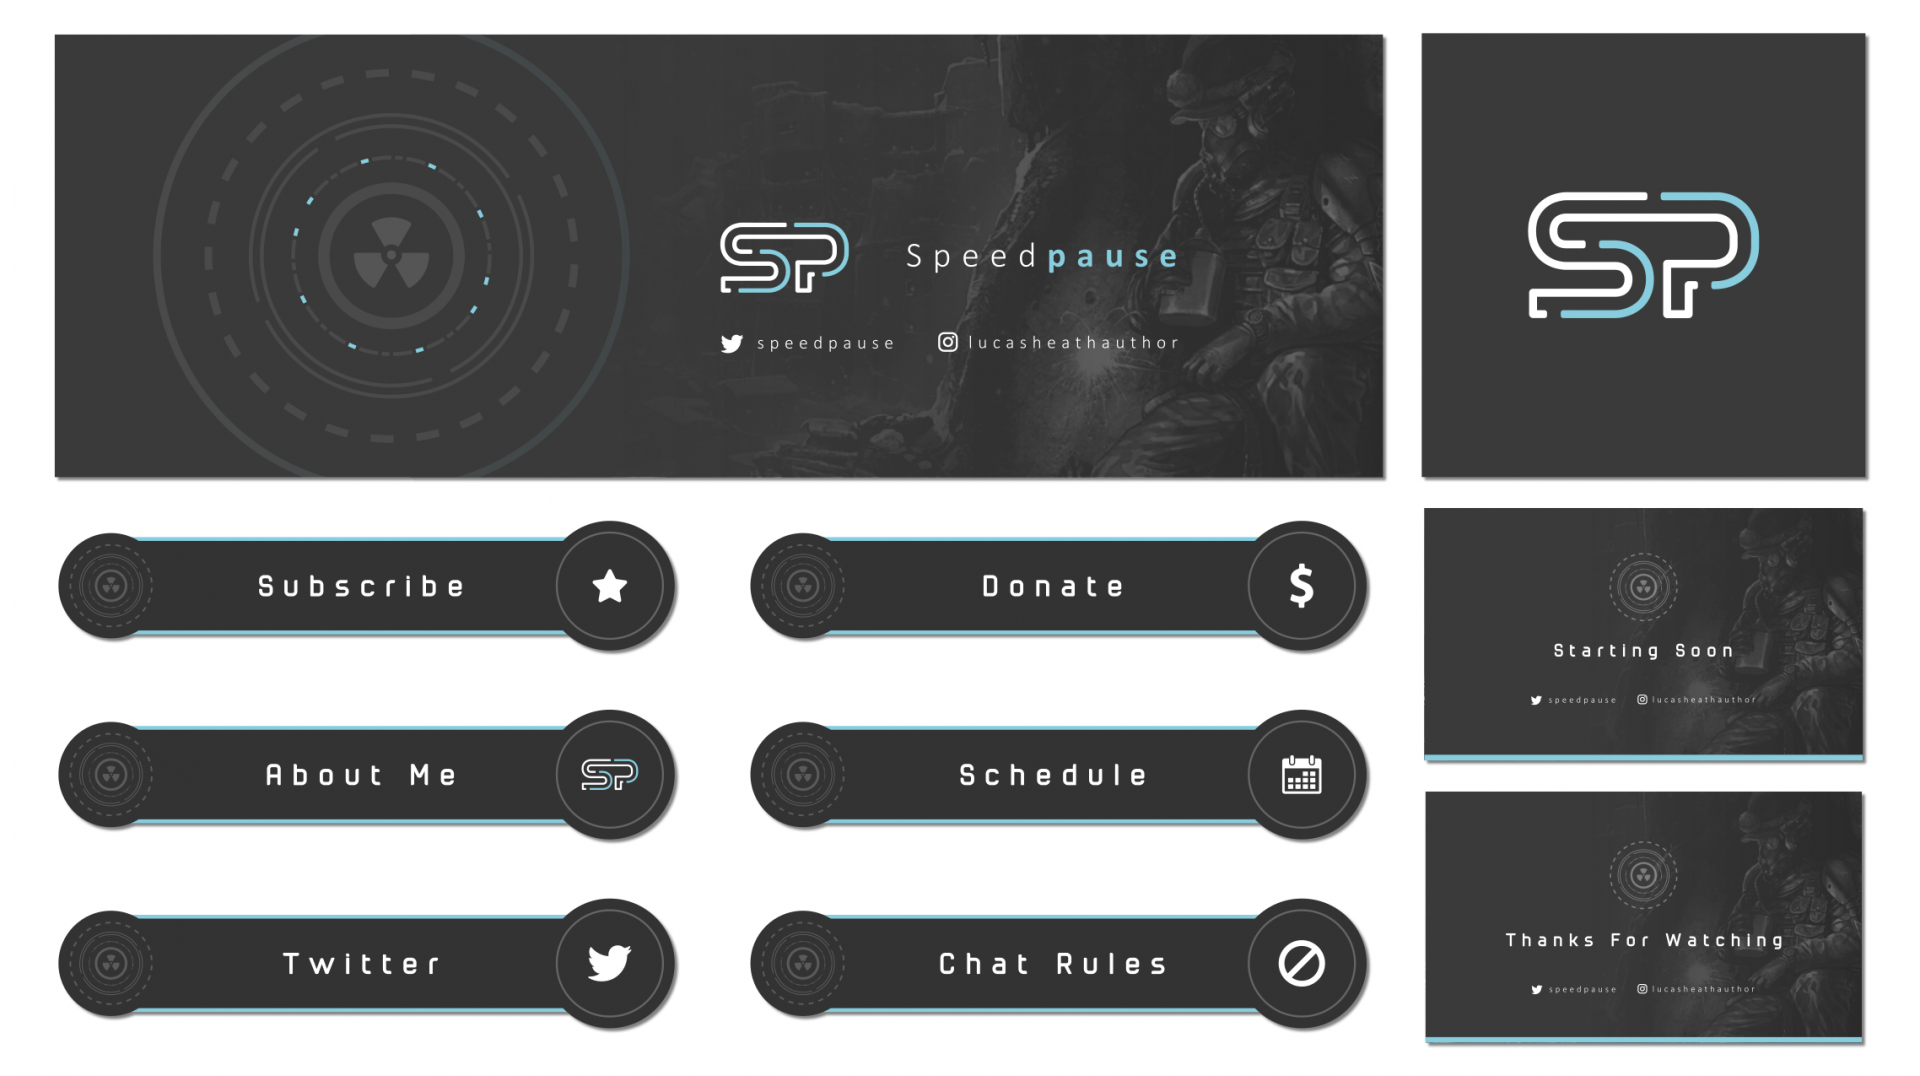 Simple SP logo on a twitch package with an apocalypse theme